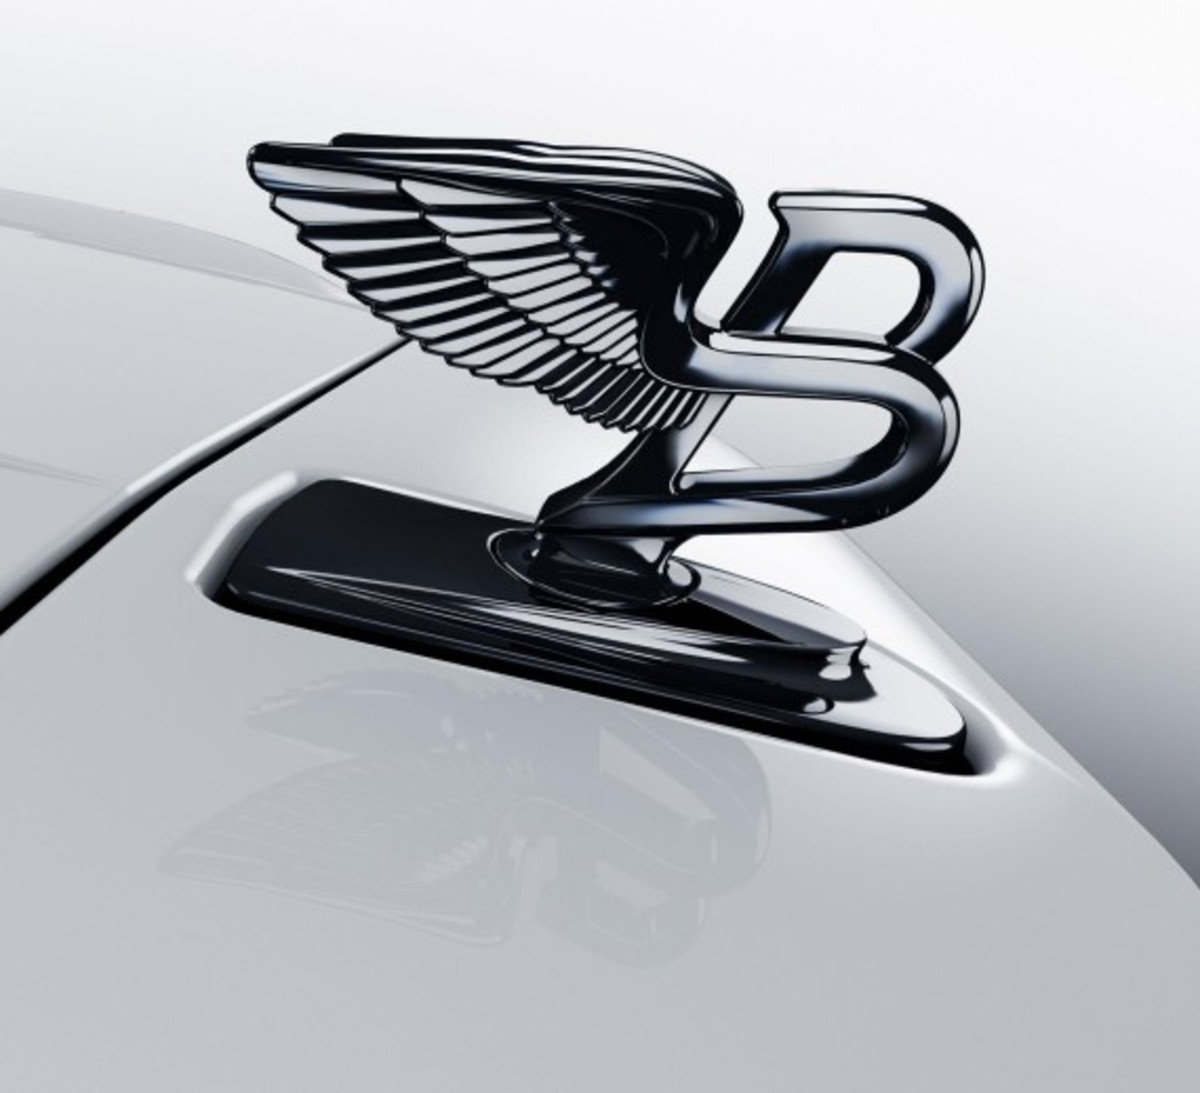 2014-bentley-mulsanne-95-limited-edition-06